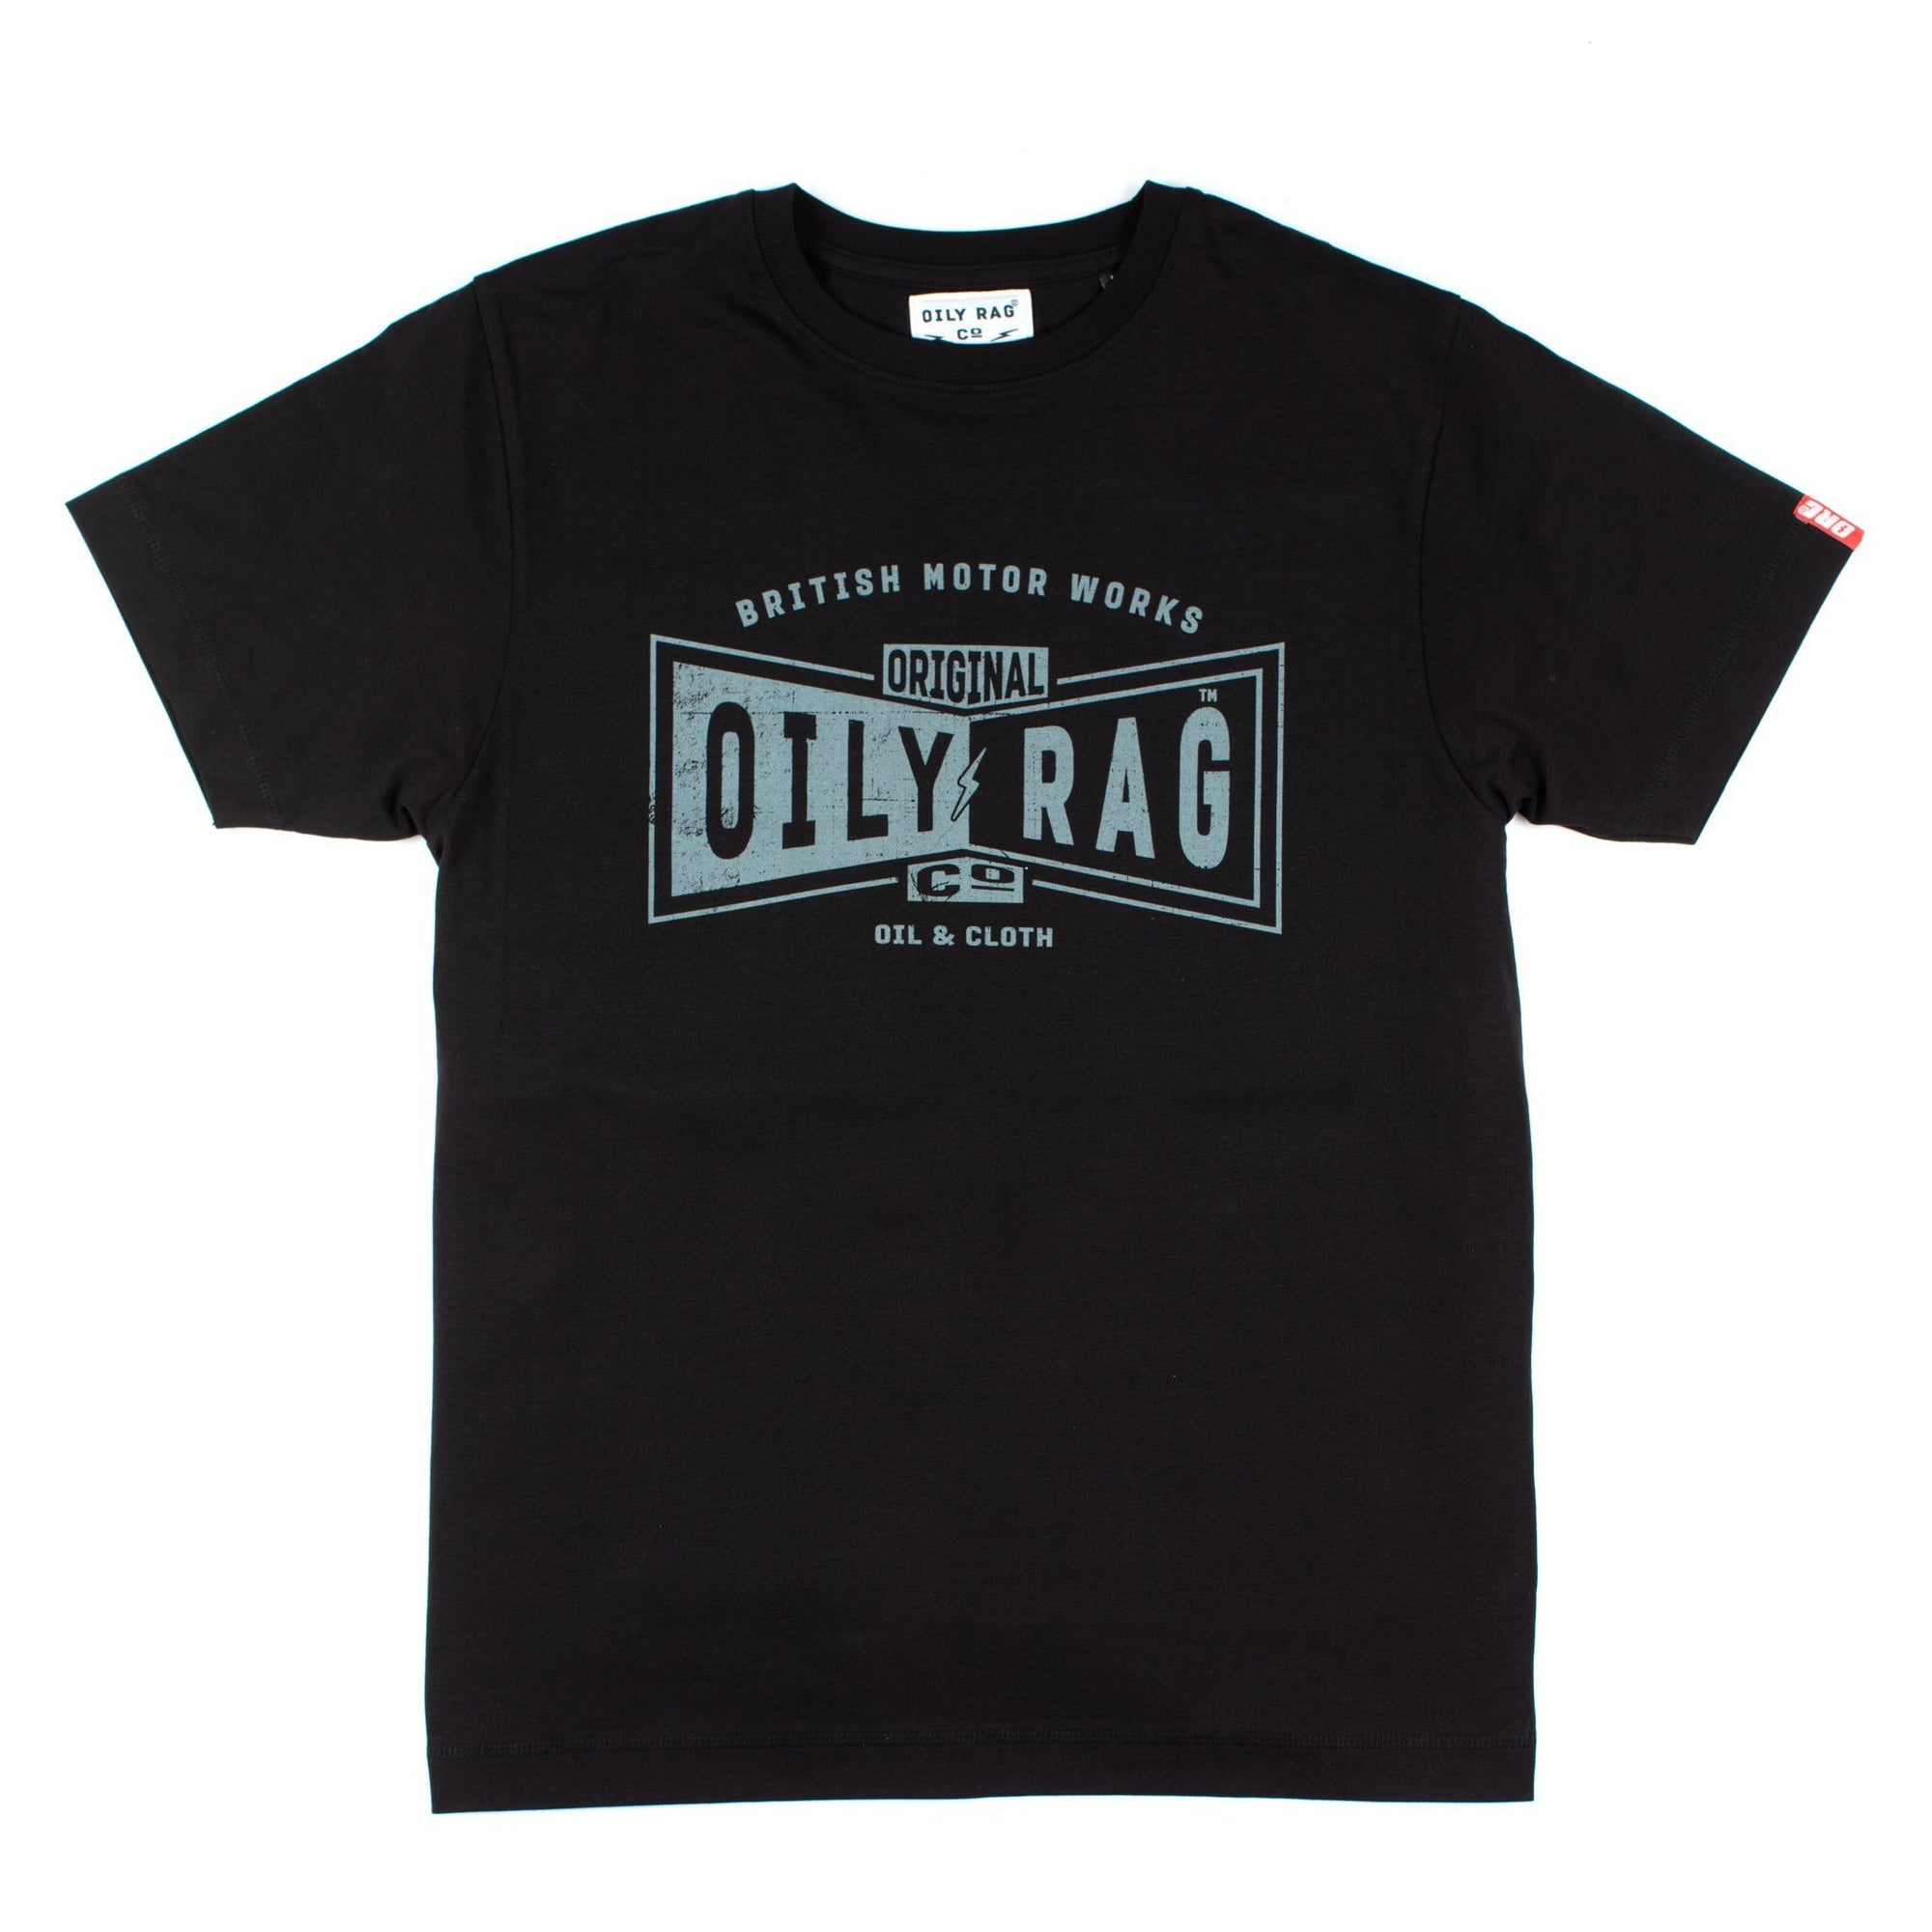 Oily Rag Clothing - Oily Rag Clothing Black Label Original T'Shirt - T-Shirts - Salt Flats Clothing